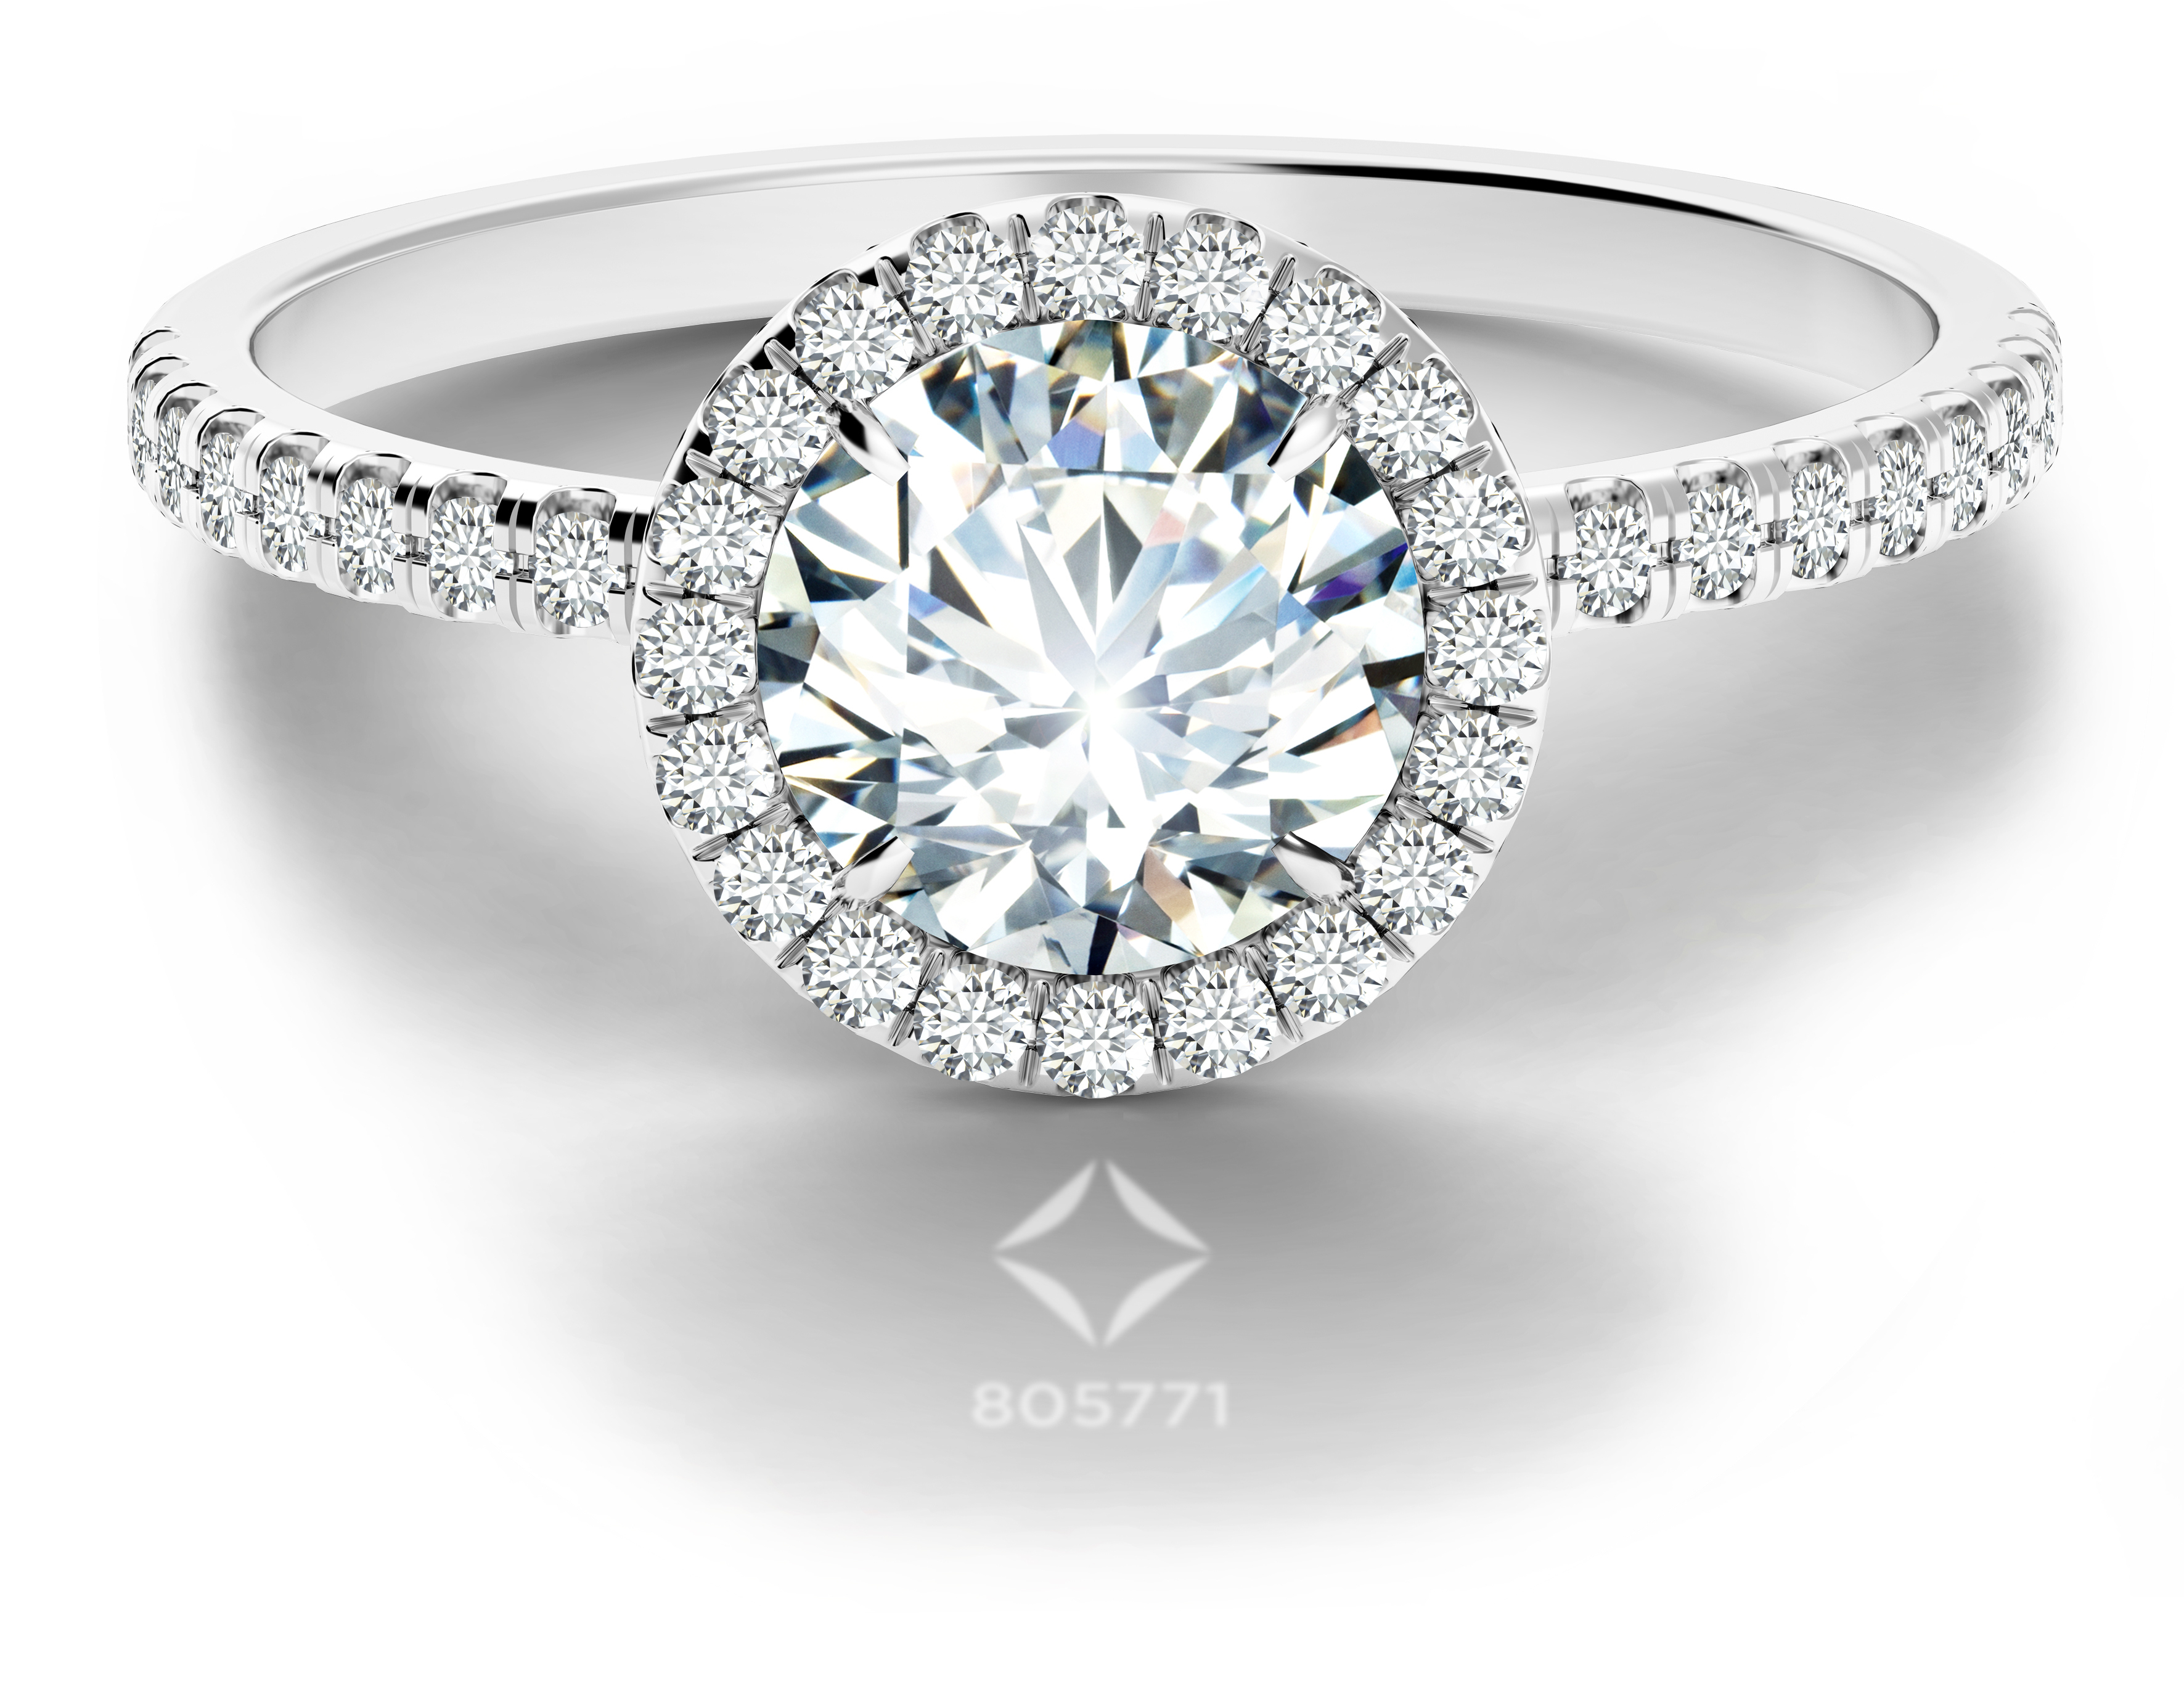 taing jewellers ottawa s trusted jeweller for over 30 years